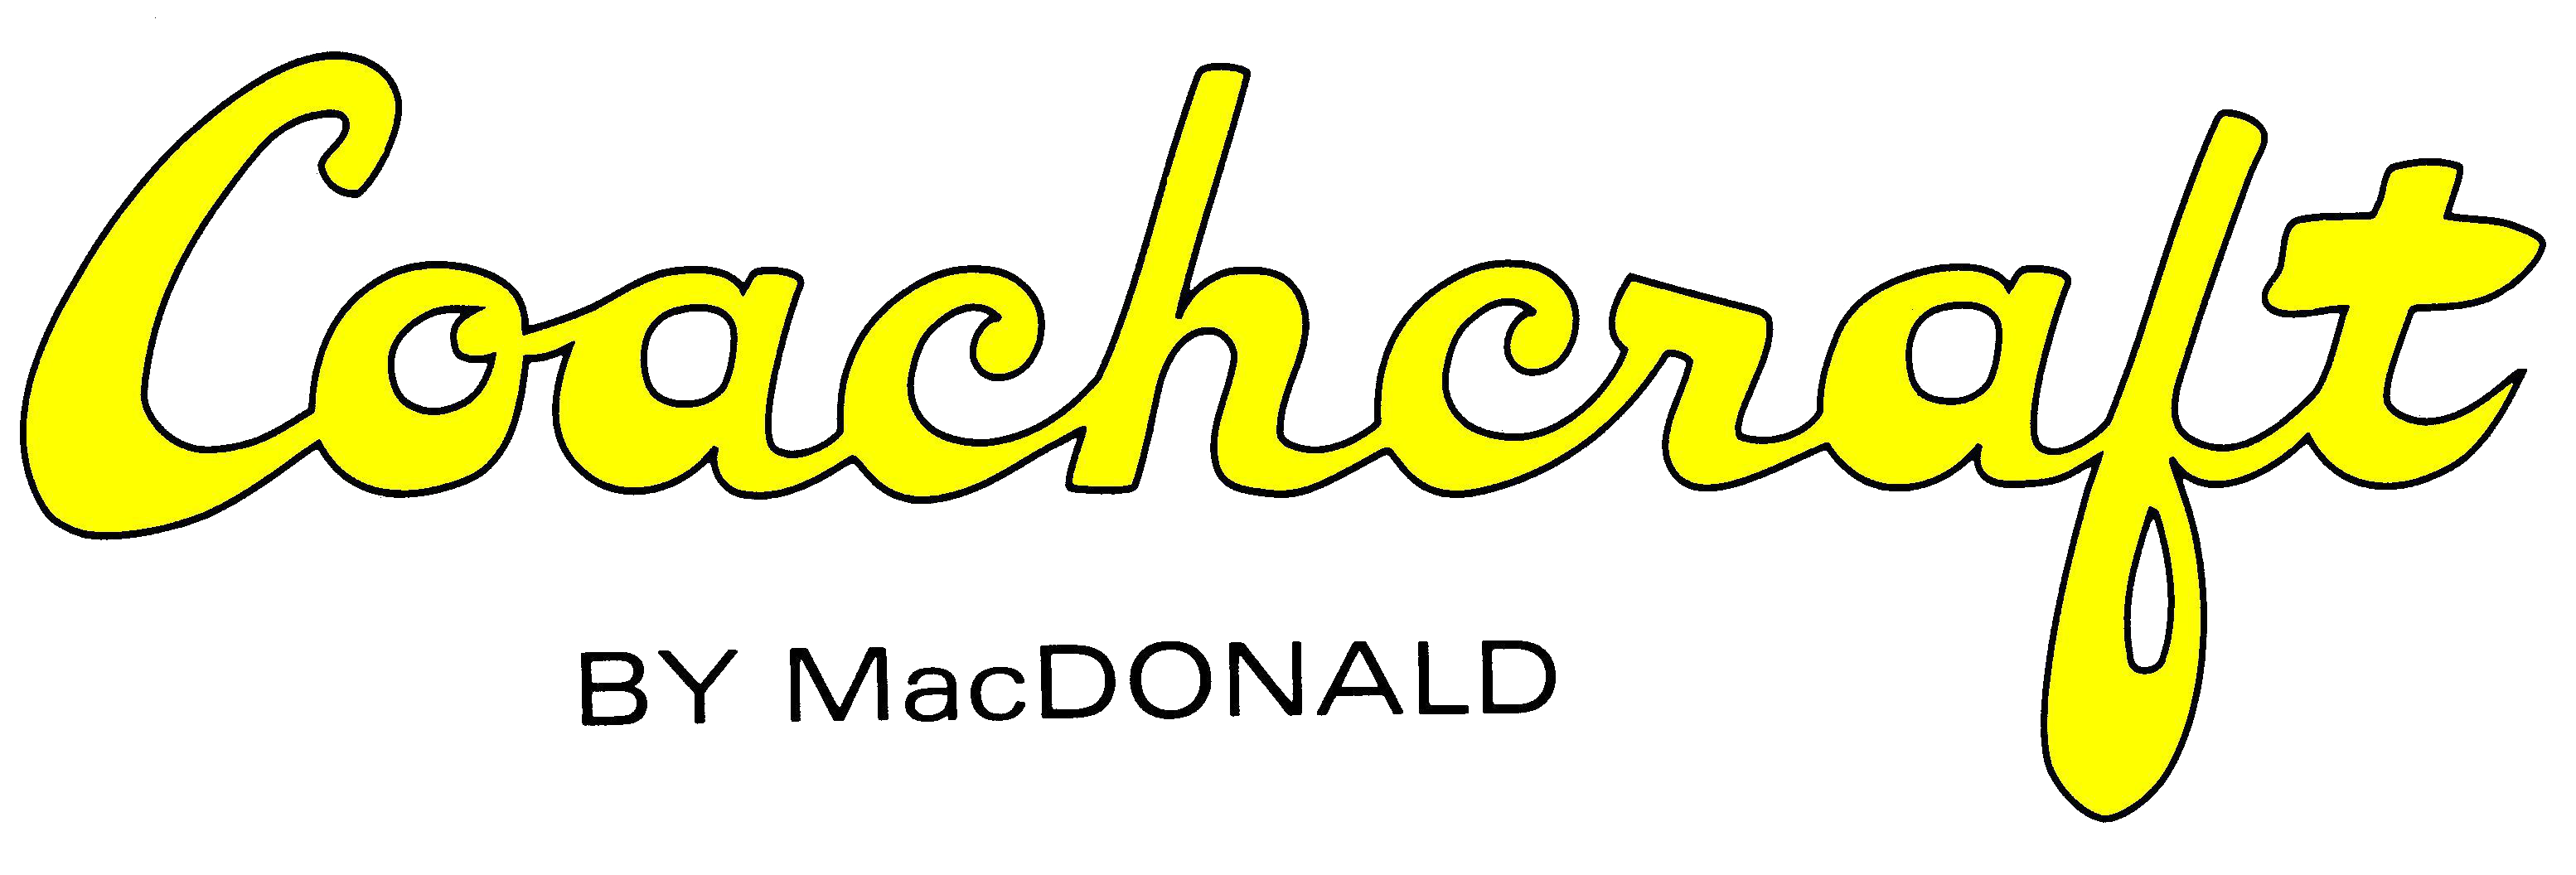 Coachcraft by MacDonald – Customize Your Coachcraft